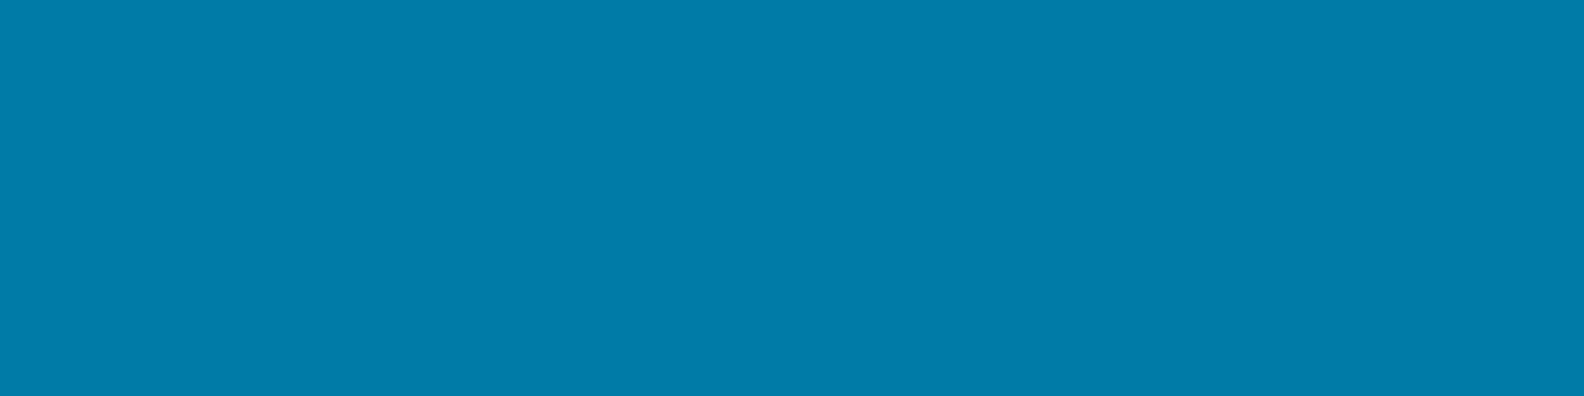 1584x396 Cerulean Solid Color Background